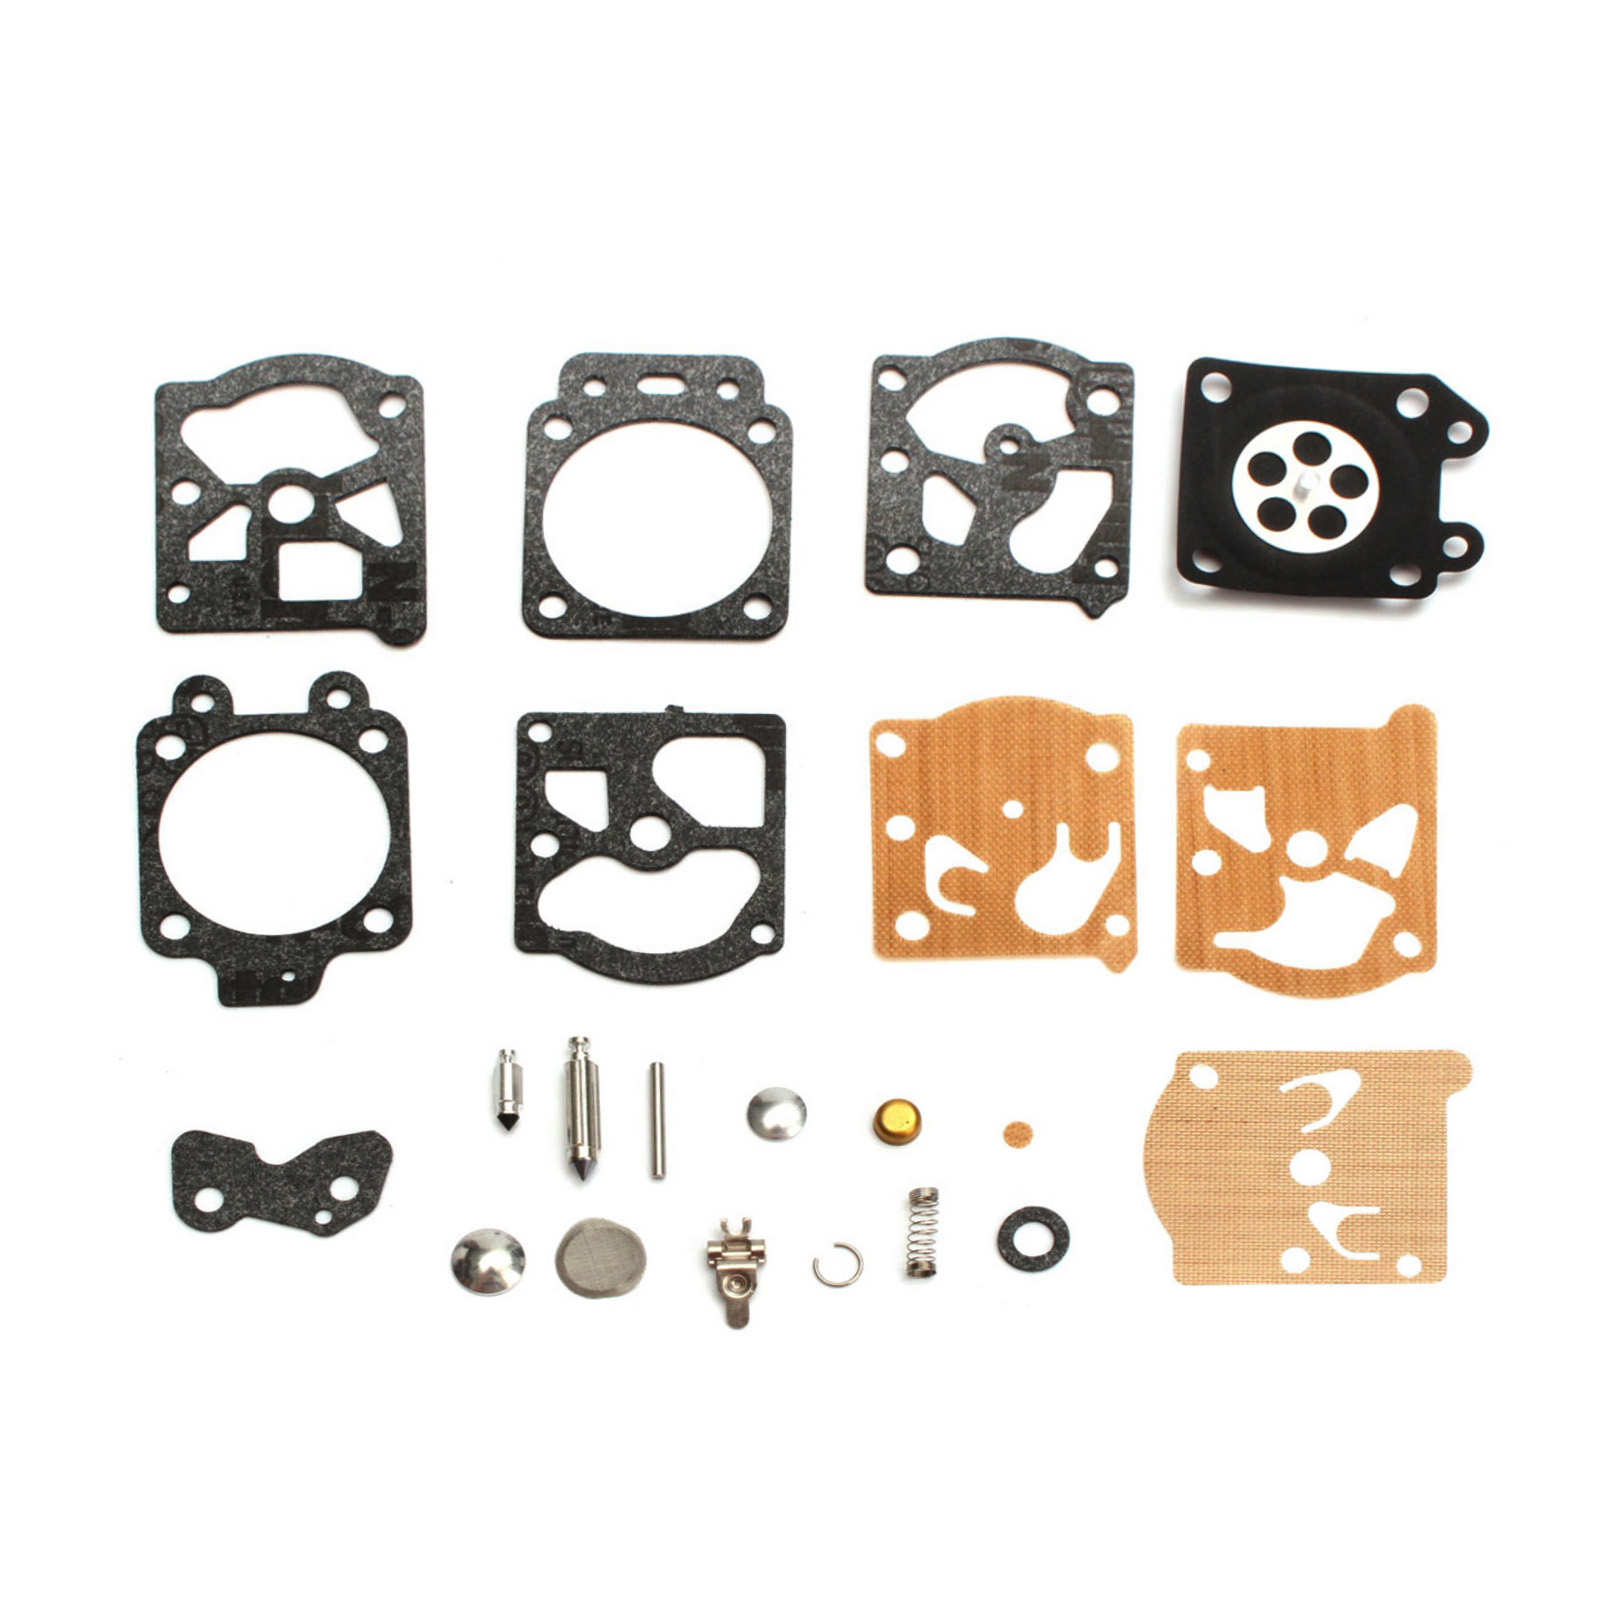 Walbro Carburetor Repair Kit / Fits Poulan WT-628-1, WT-629-1, WT-639-1 & Other Chainsaw Carburetors K20-WAT